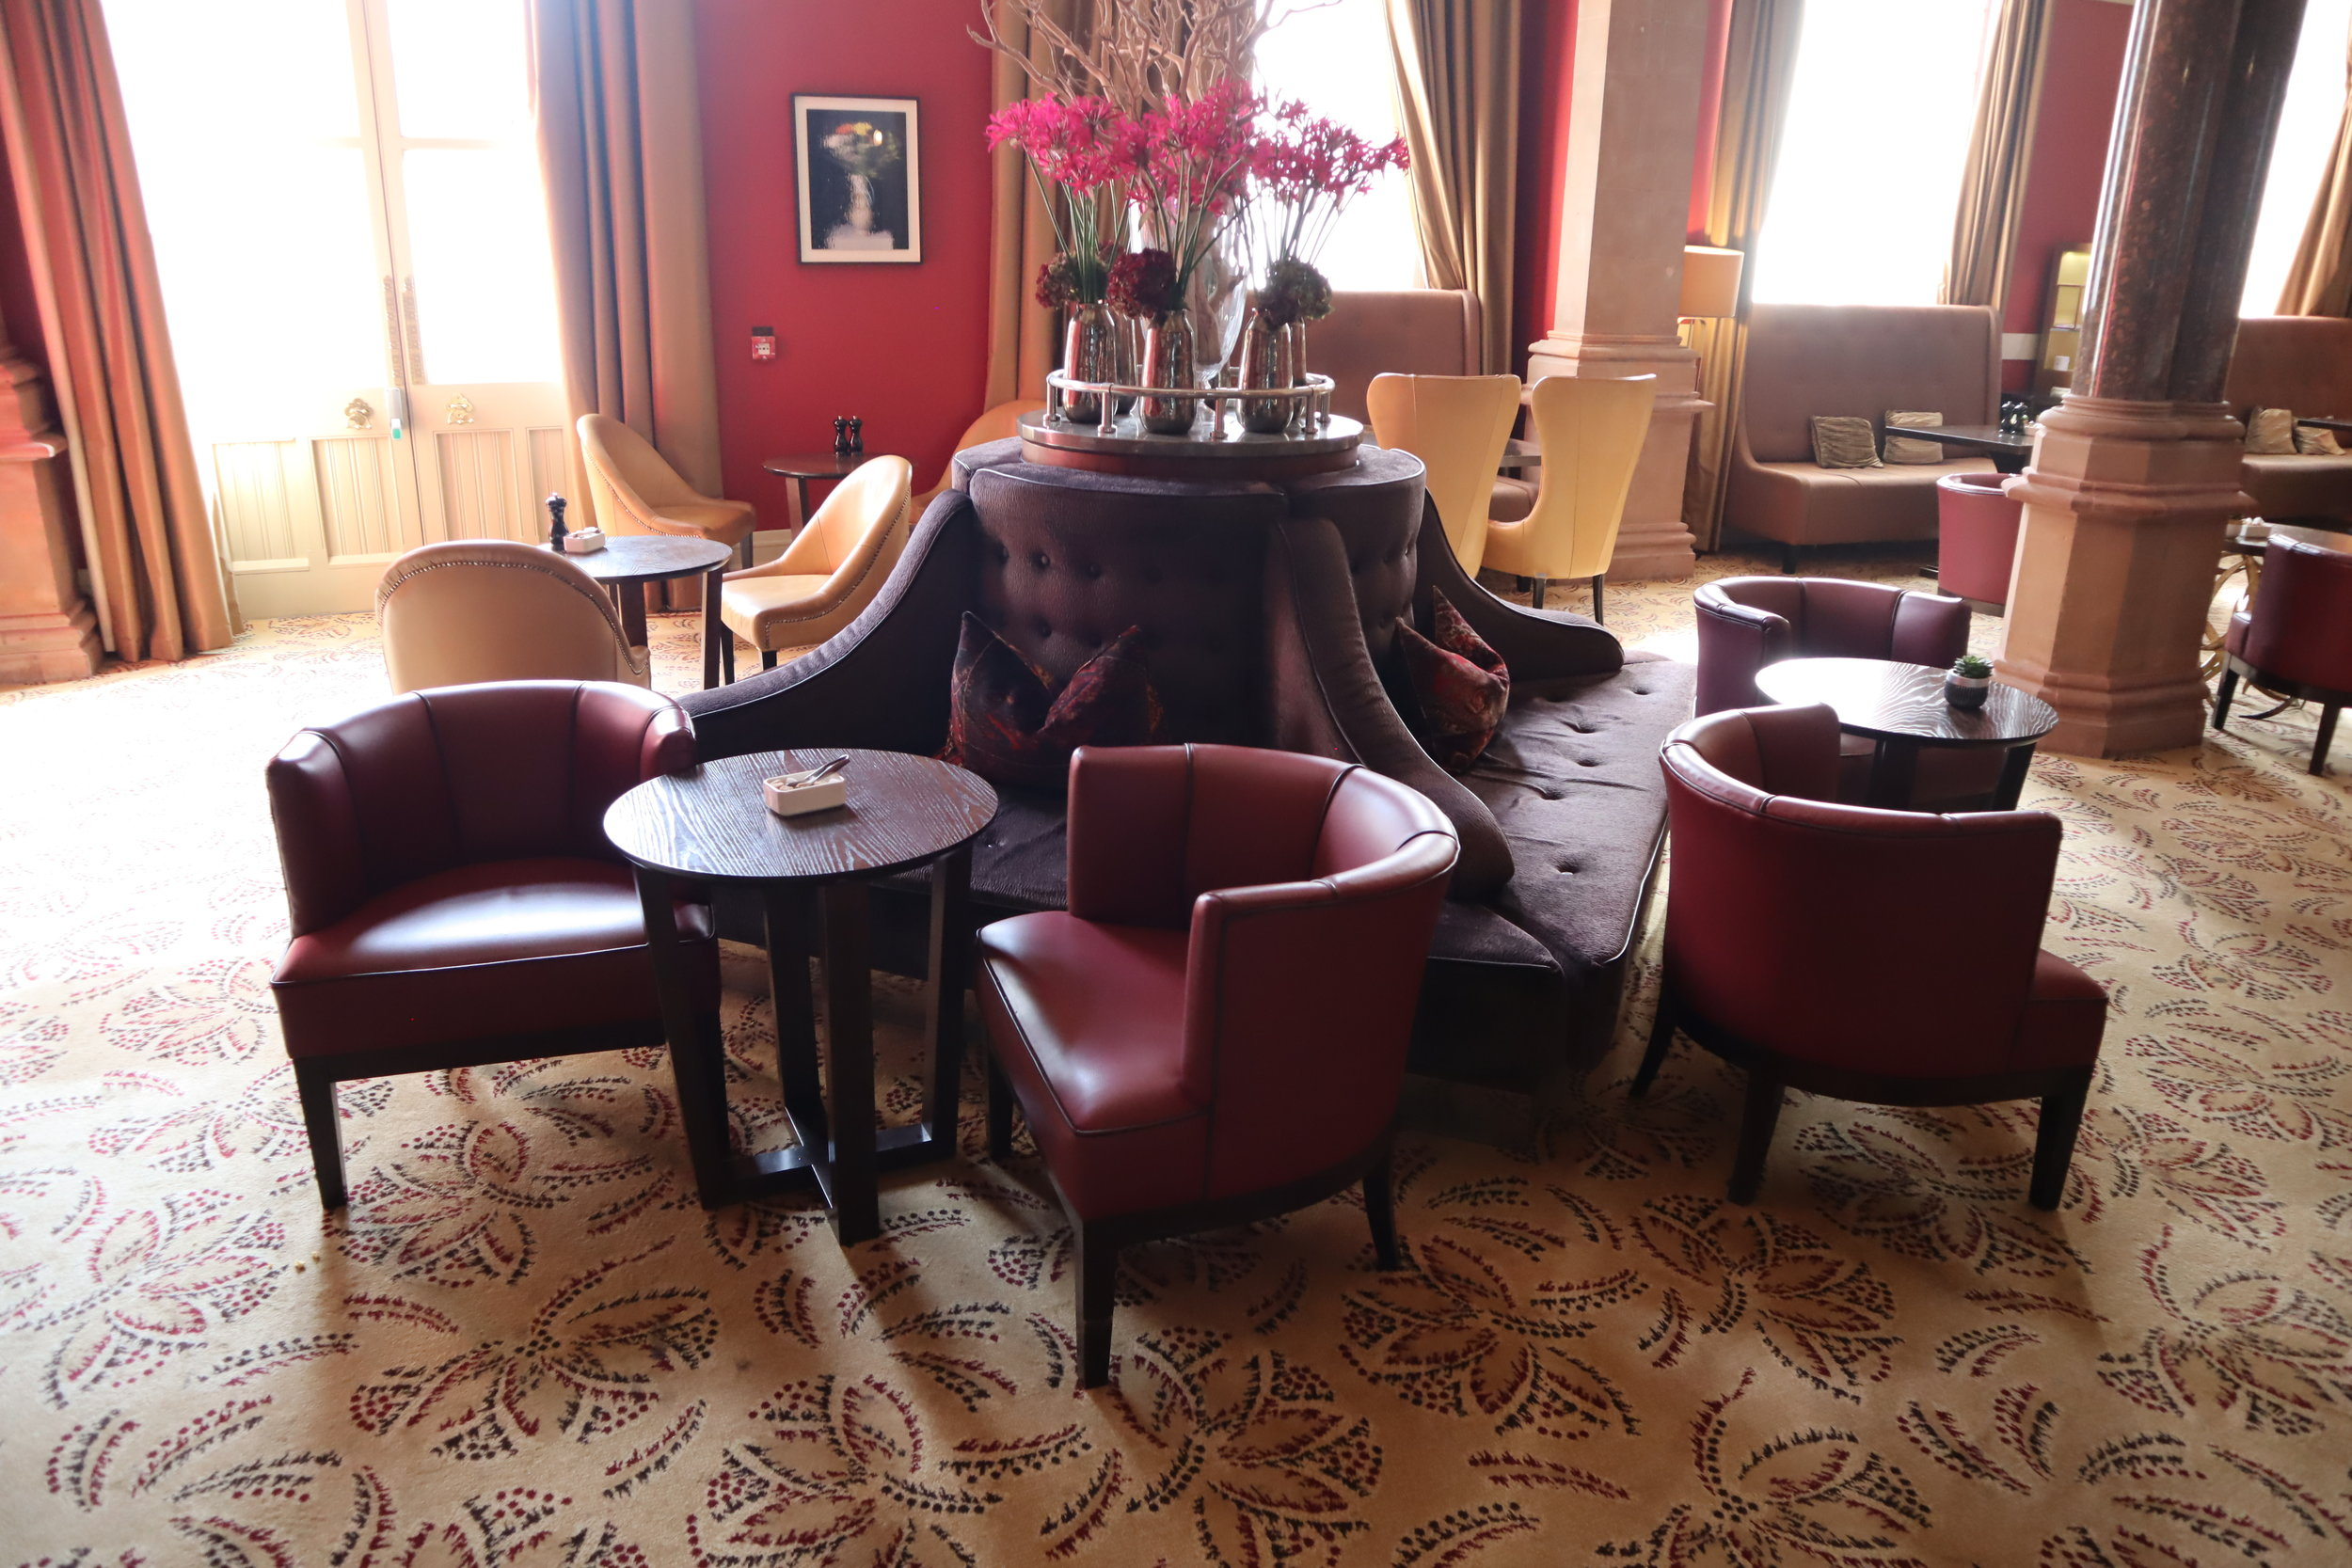 St. Pancras Renaissance Hotel London – Chambers Club seating